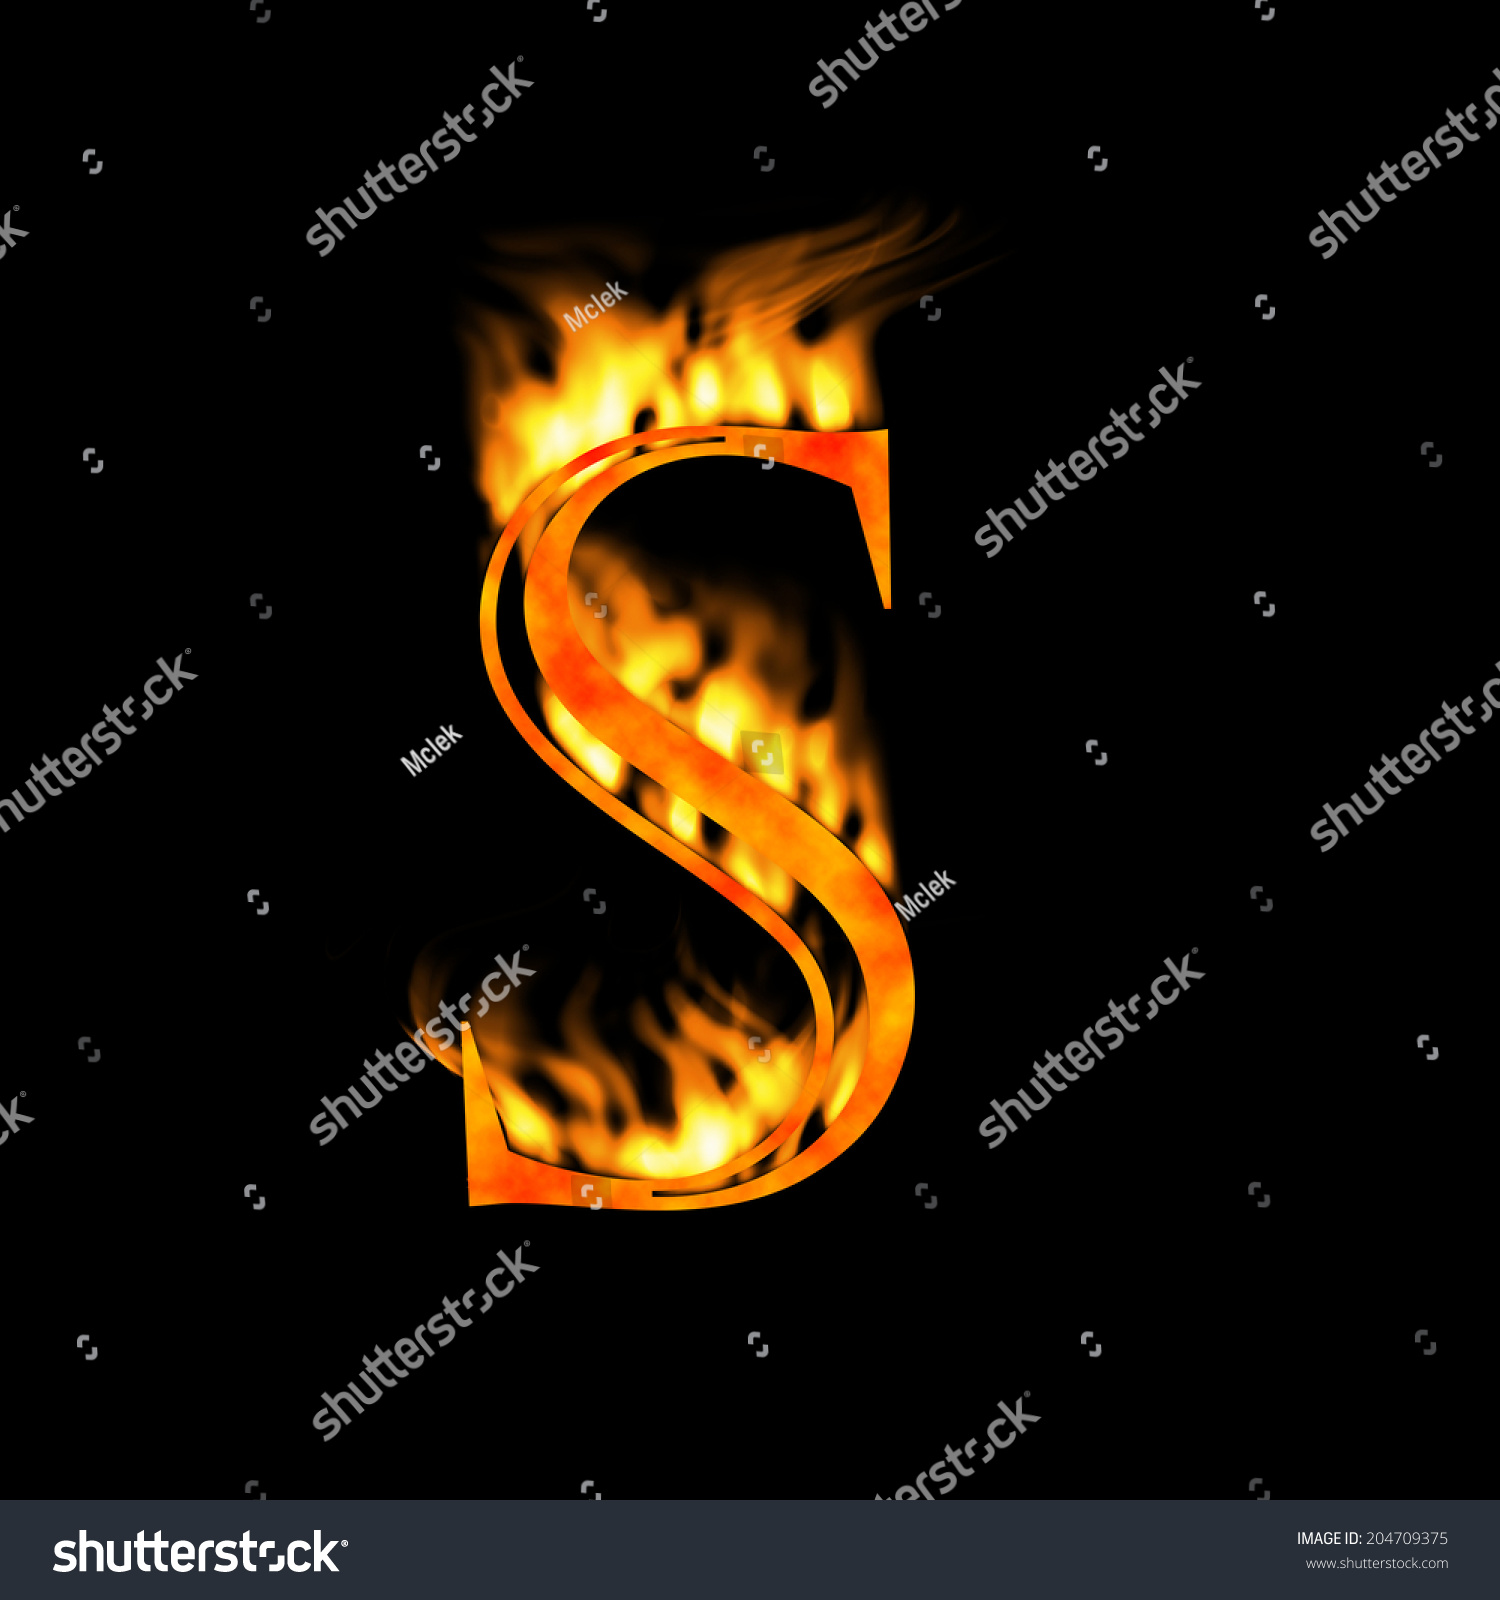 Letter symbols text images symbol and sign ideas letter s letter symbol fire alphabet stock illustration 204709375 letter s letter symbol fire alphabet letter biocorpaavc